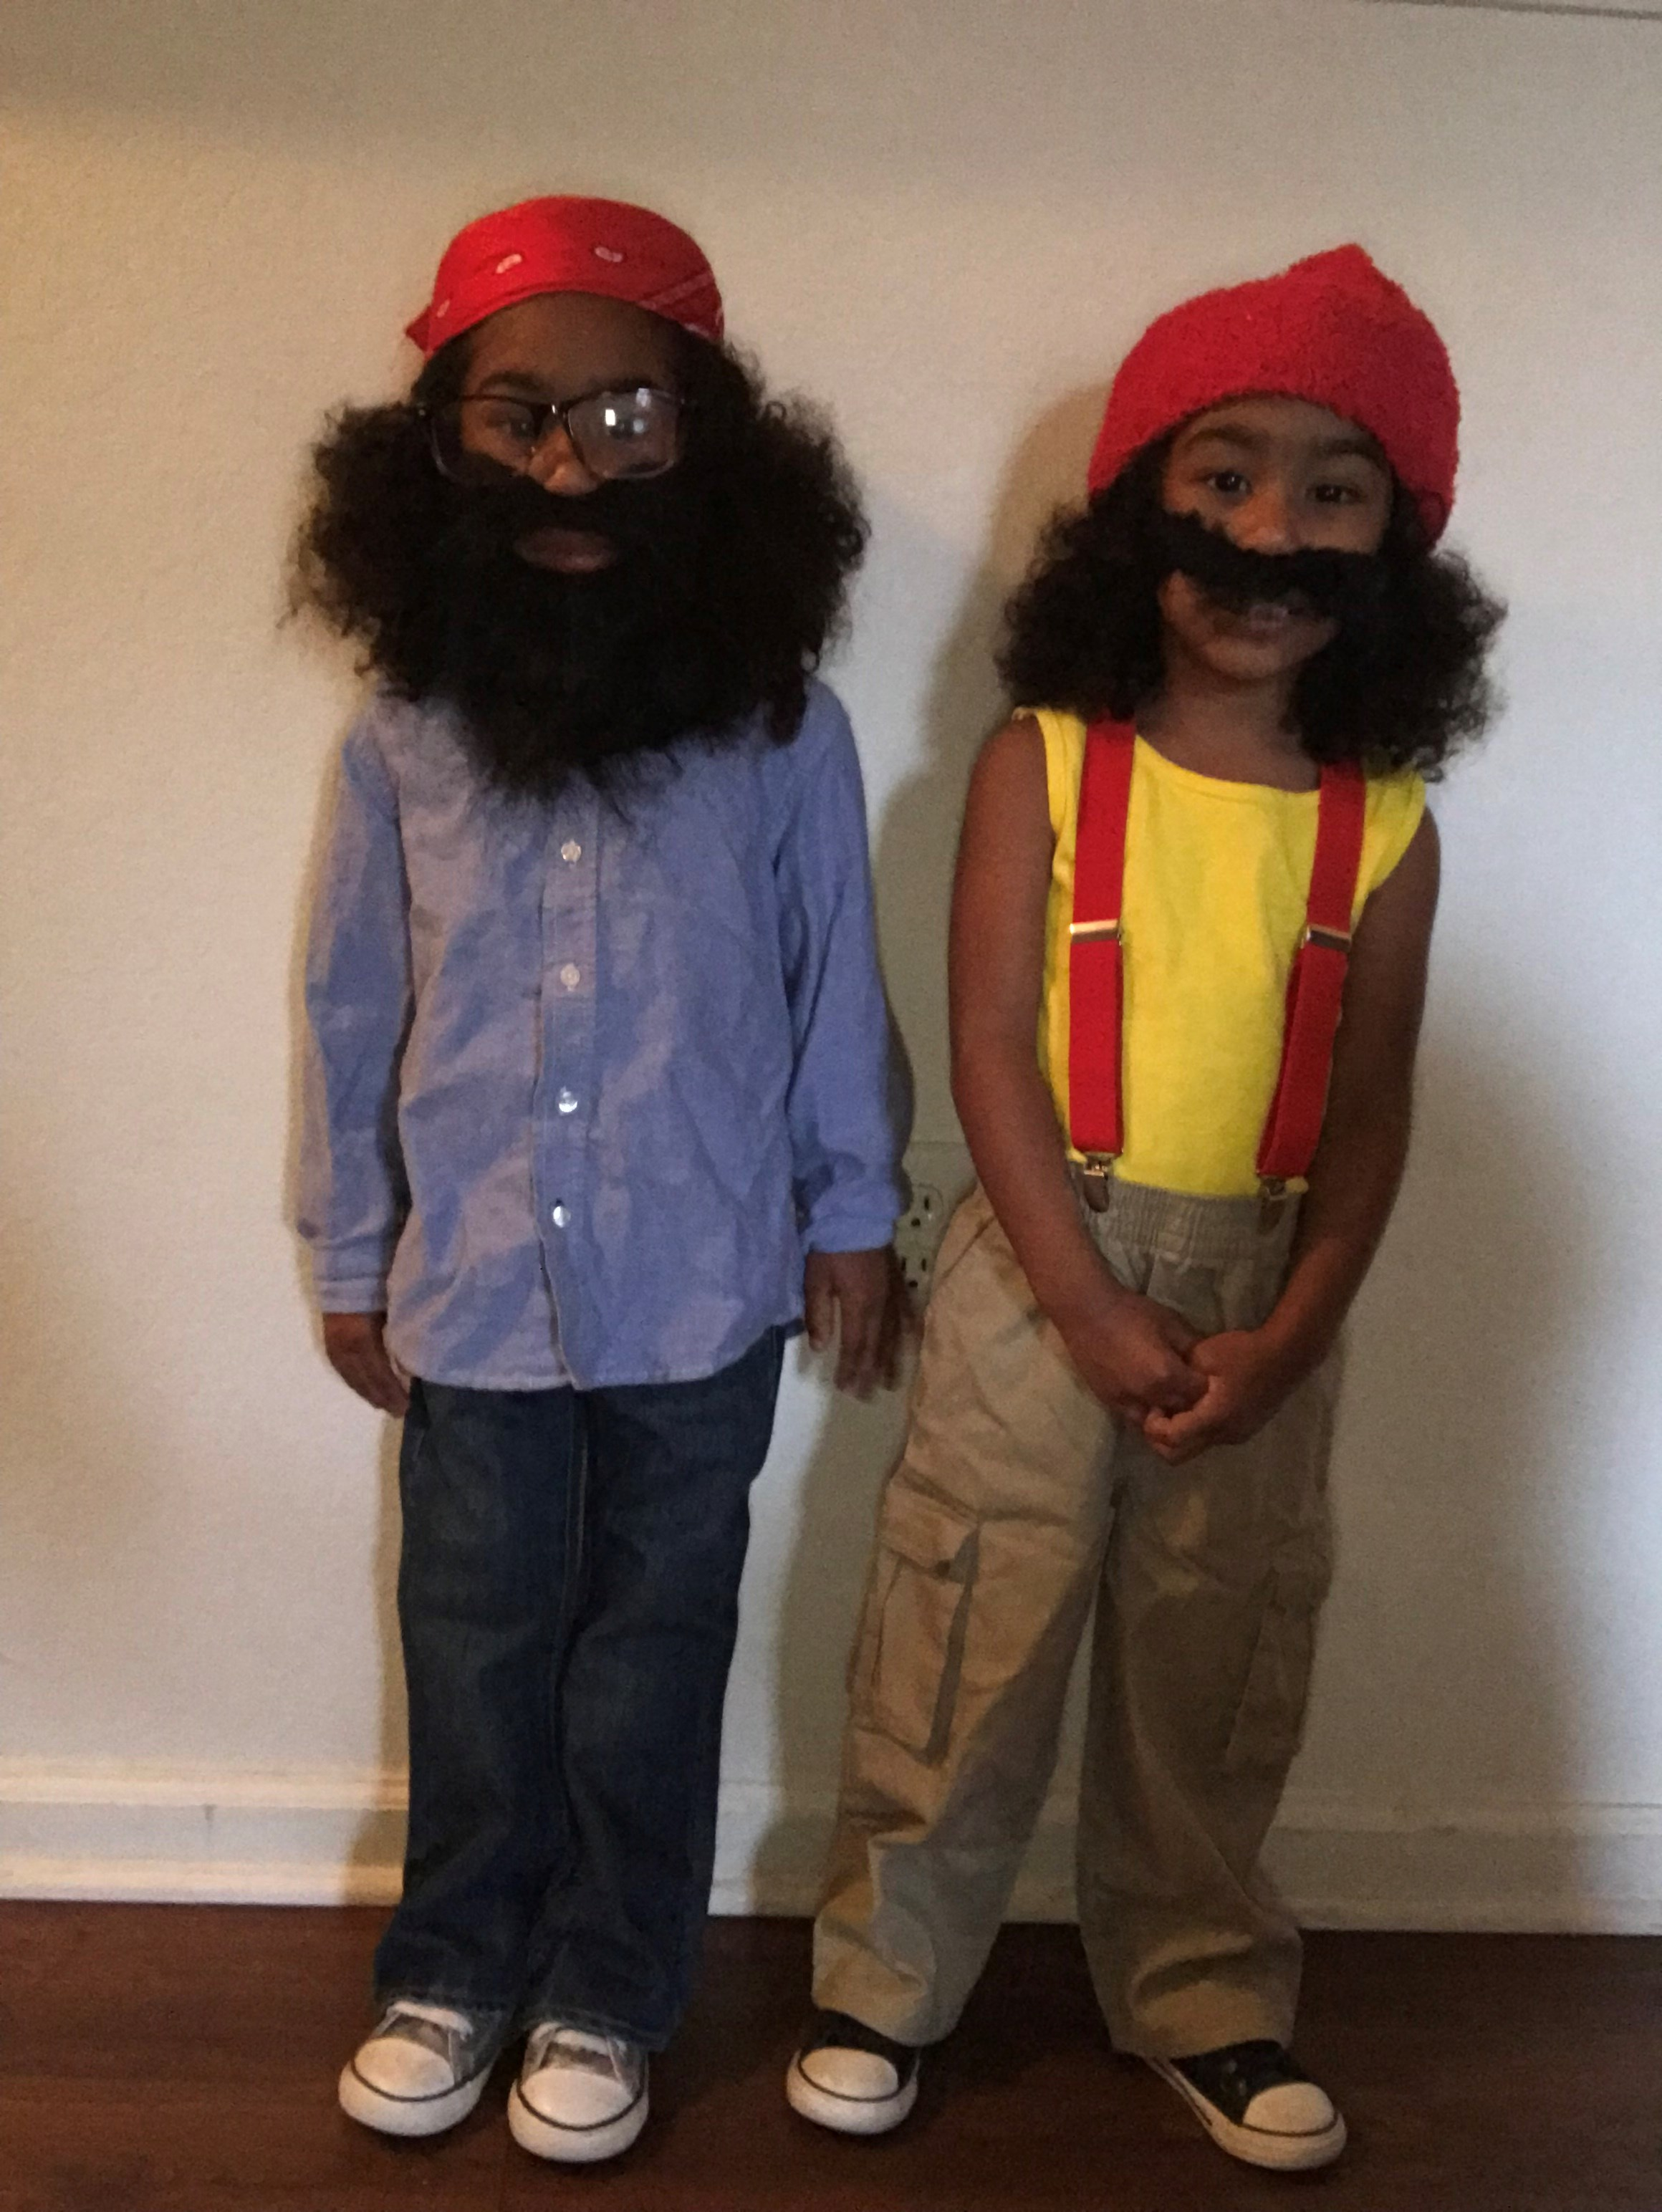 Cheech and Chong & Halloween Costume Contest - Contests and Promotions - Brownwood ...